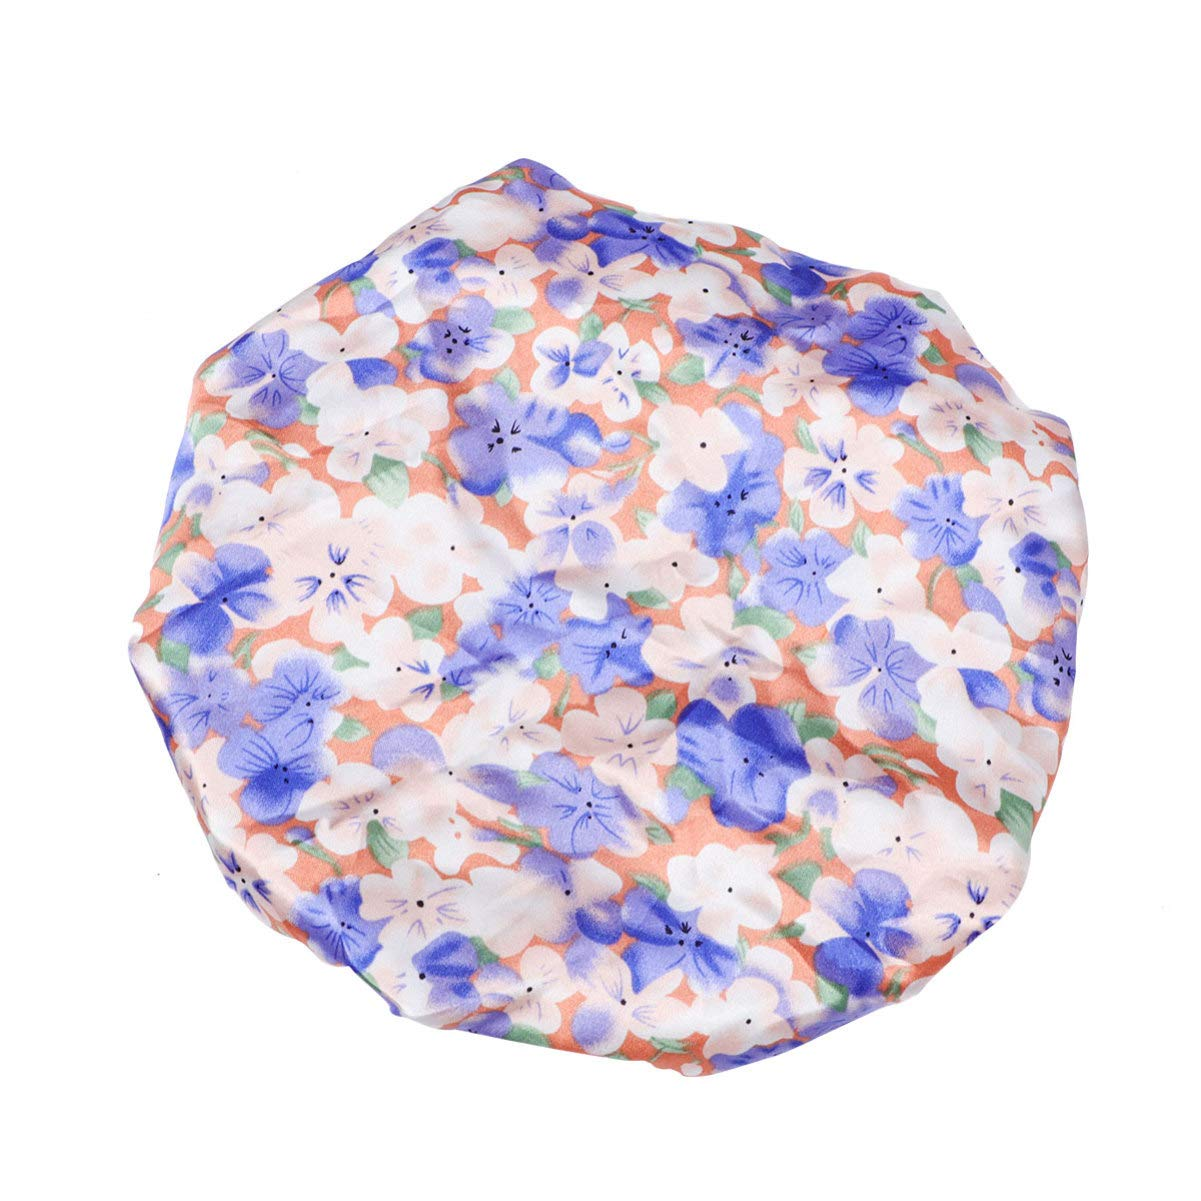 EXCEART Kids Satin Bonnet Double Layer Night Sleeping Cap Adjustable Showering Bath Hat Head Wrap Cover For Toddler Children Baby (Blue Flower)